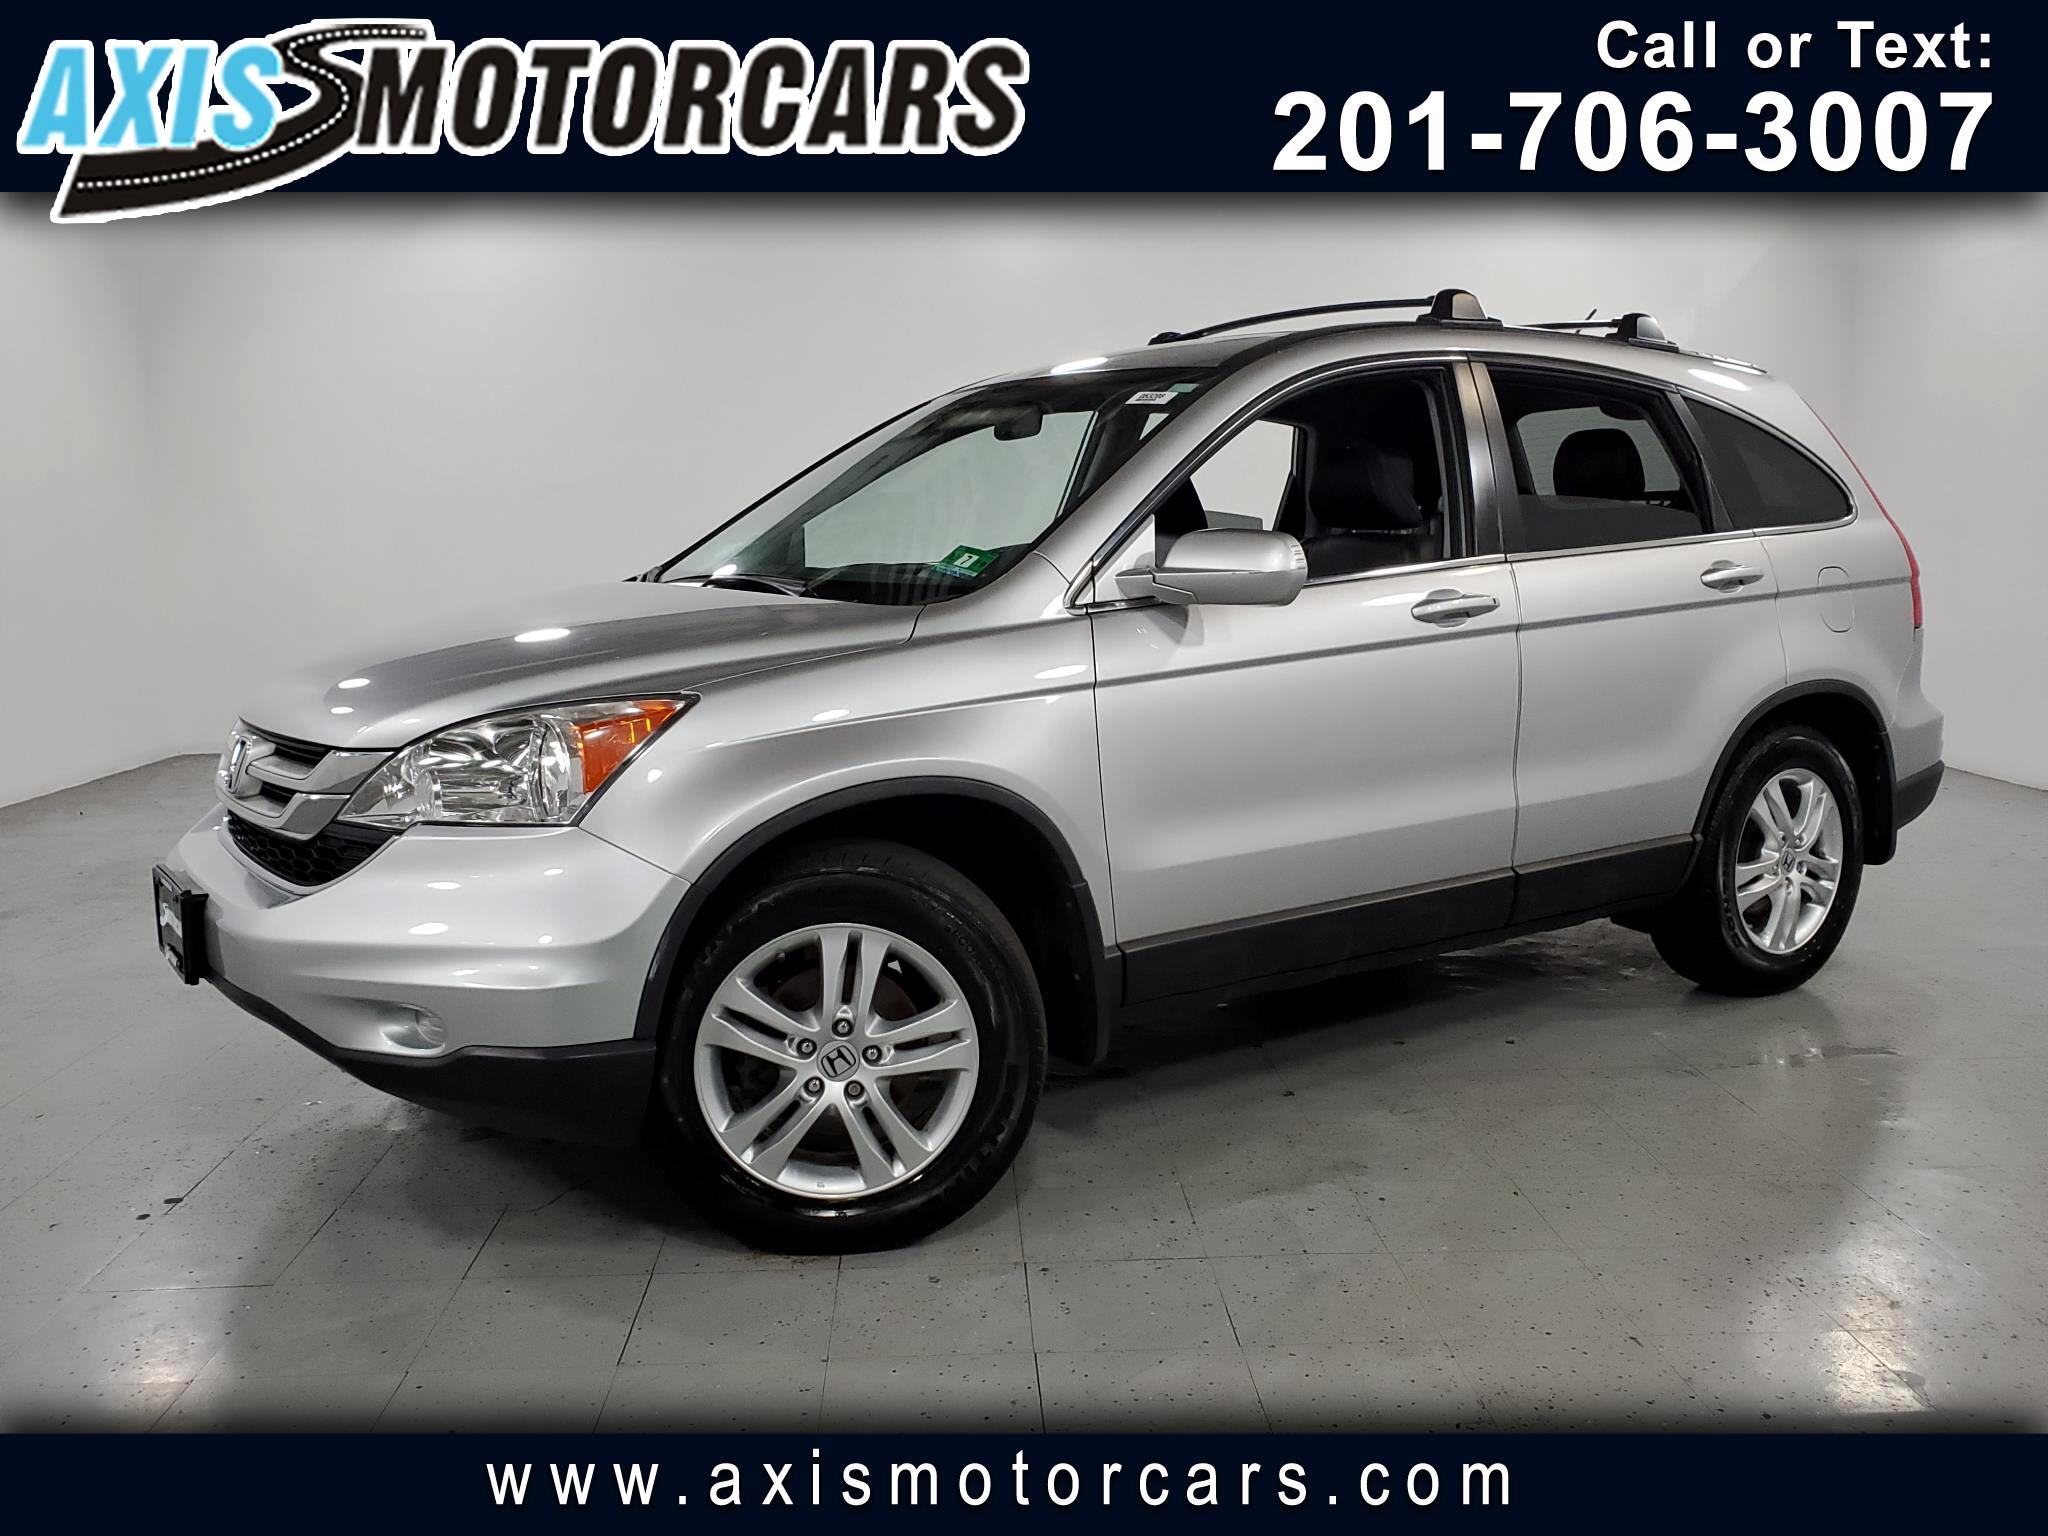 2010 Honda CR-V EX-L w/Navigation Backup Camera